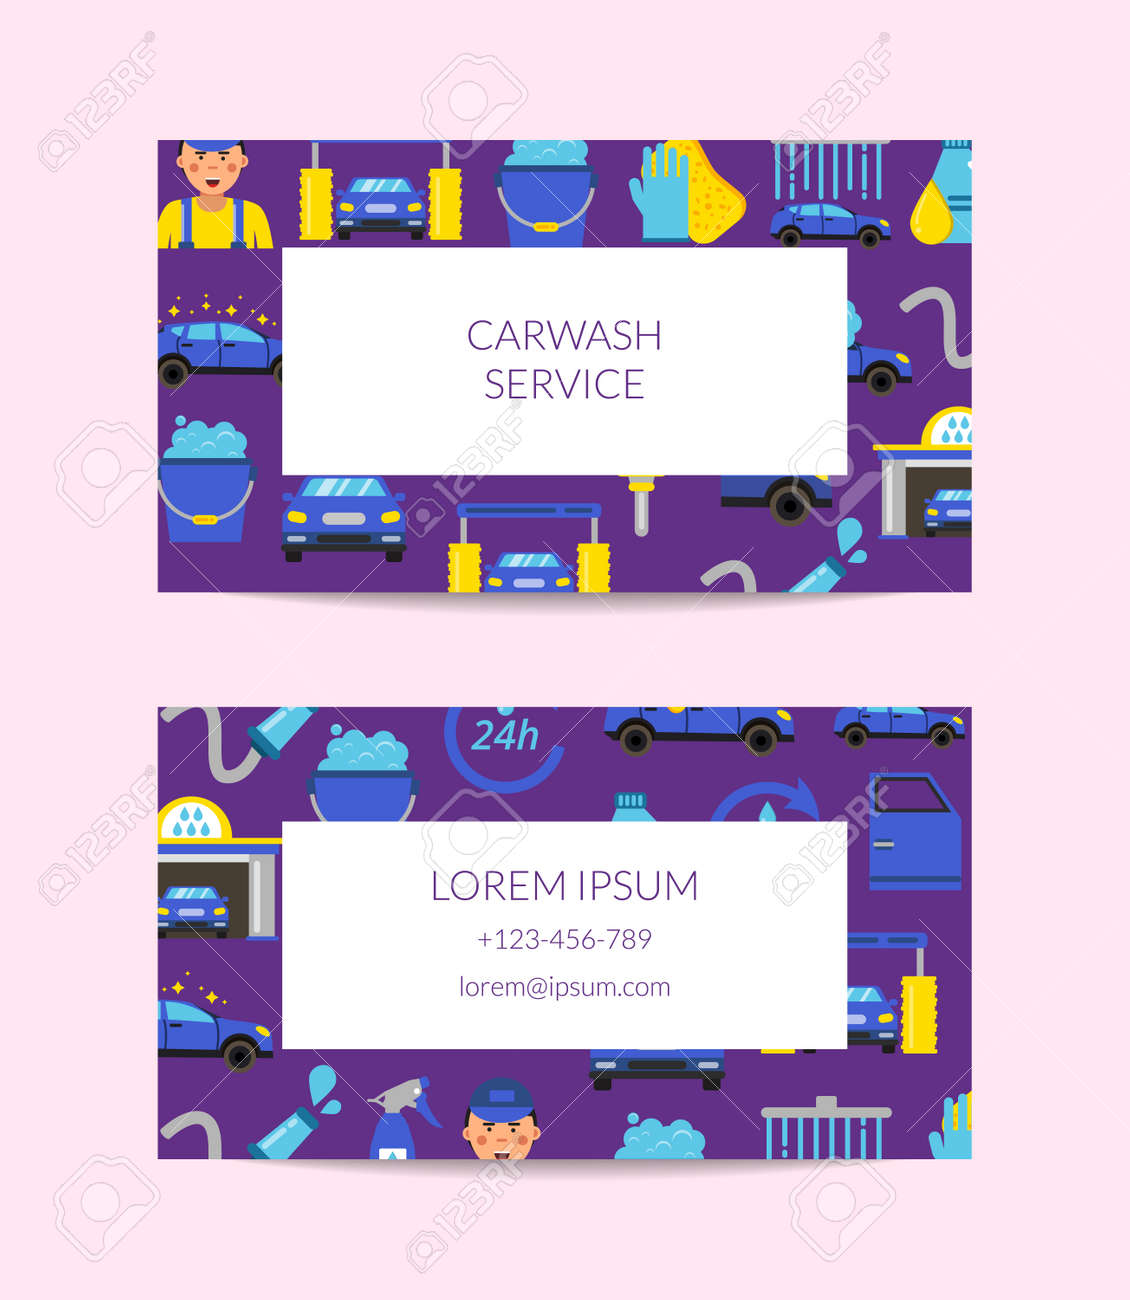 Vector business card template for car washing service isolated on white illustration - 166849250